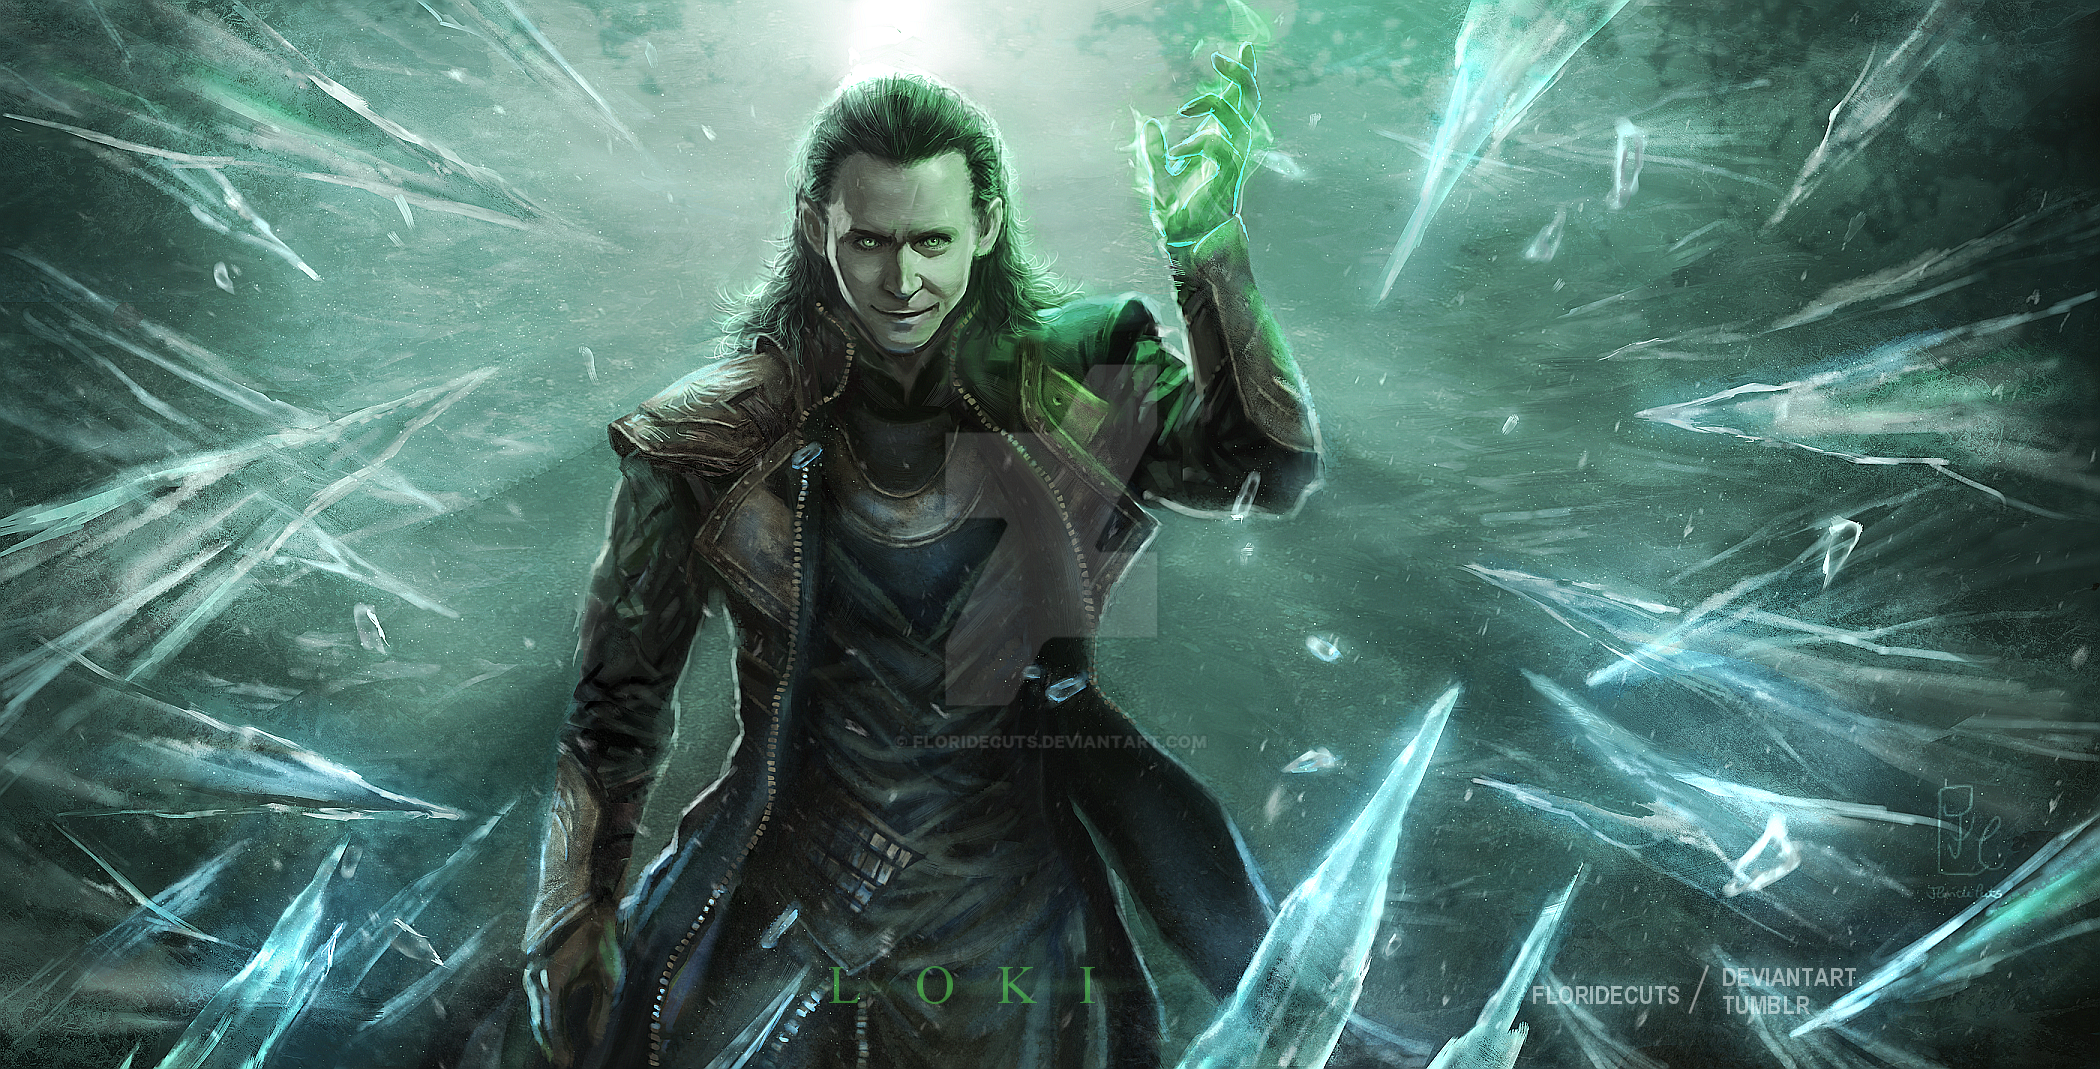 God of Mischief by FlorideCuts on DeviantArt